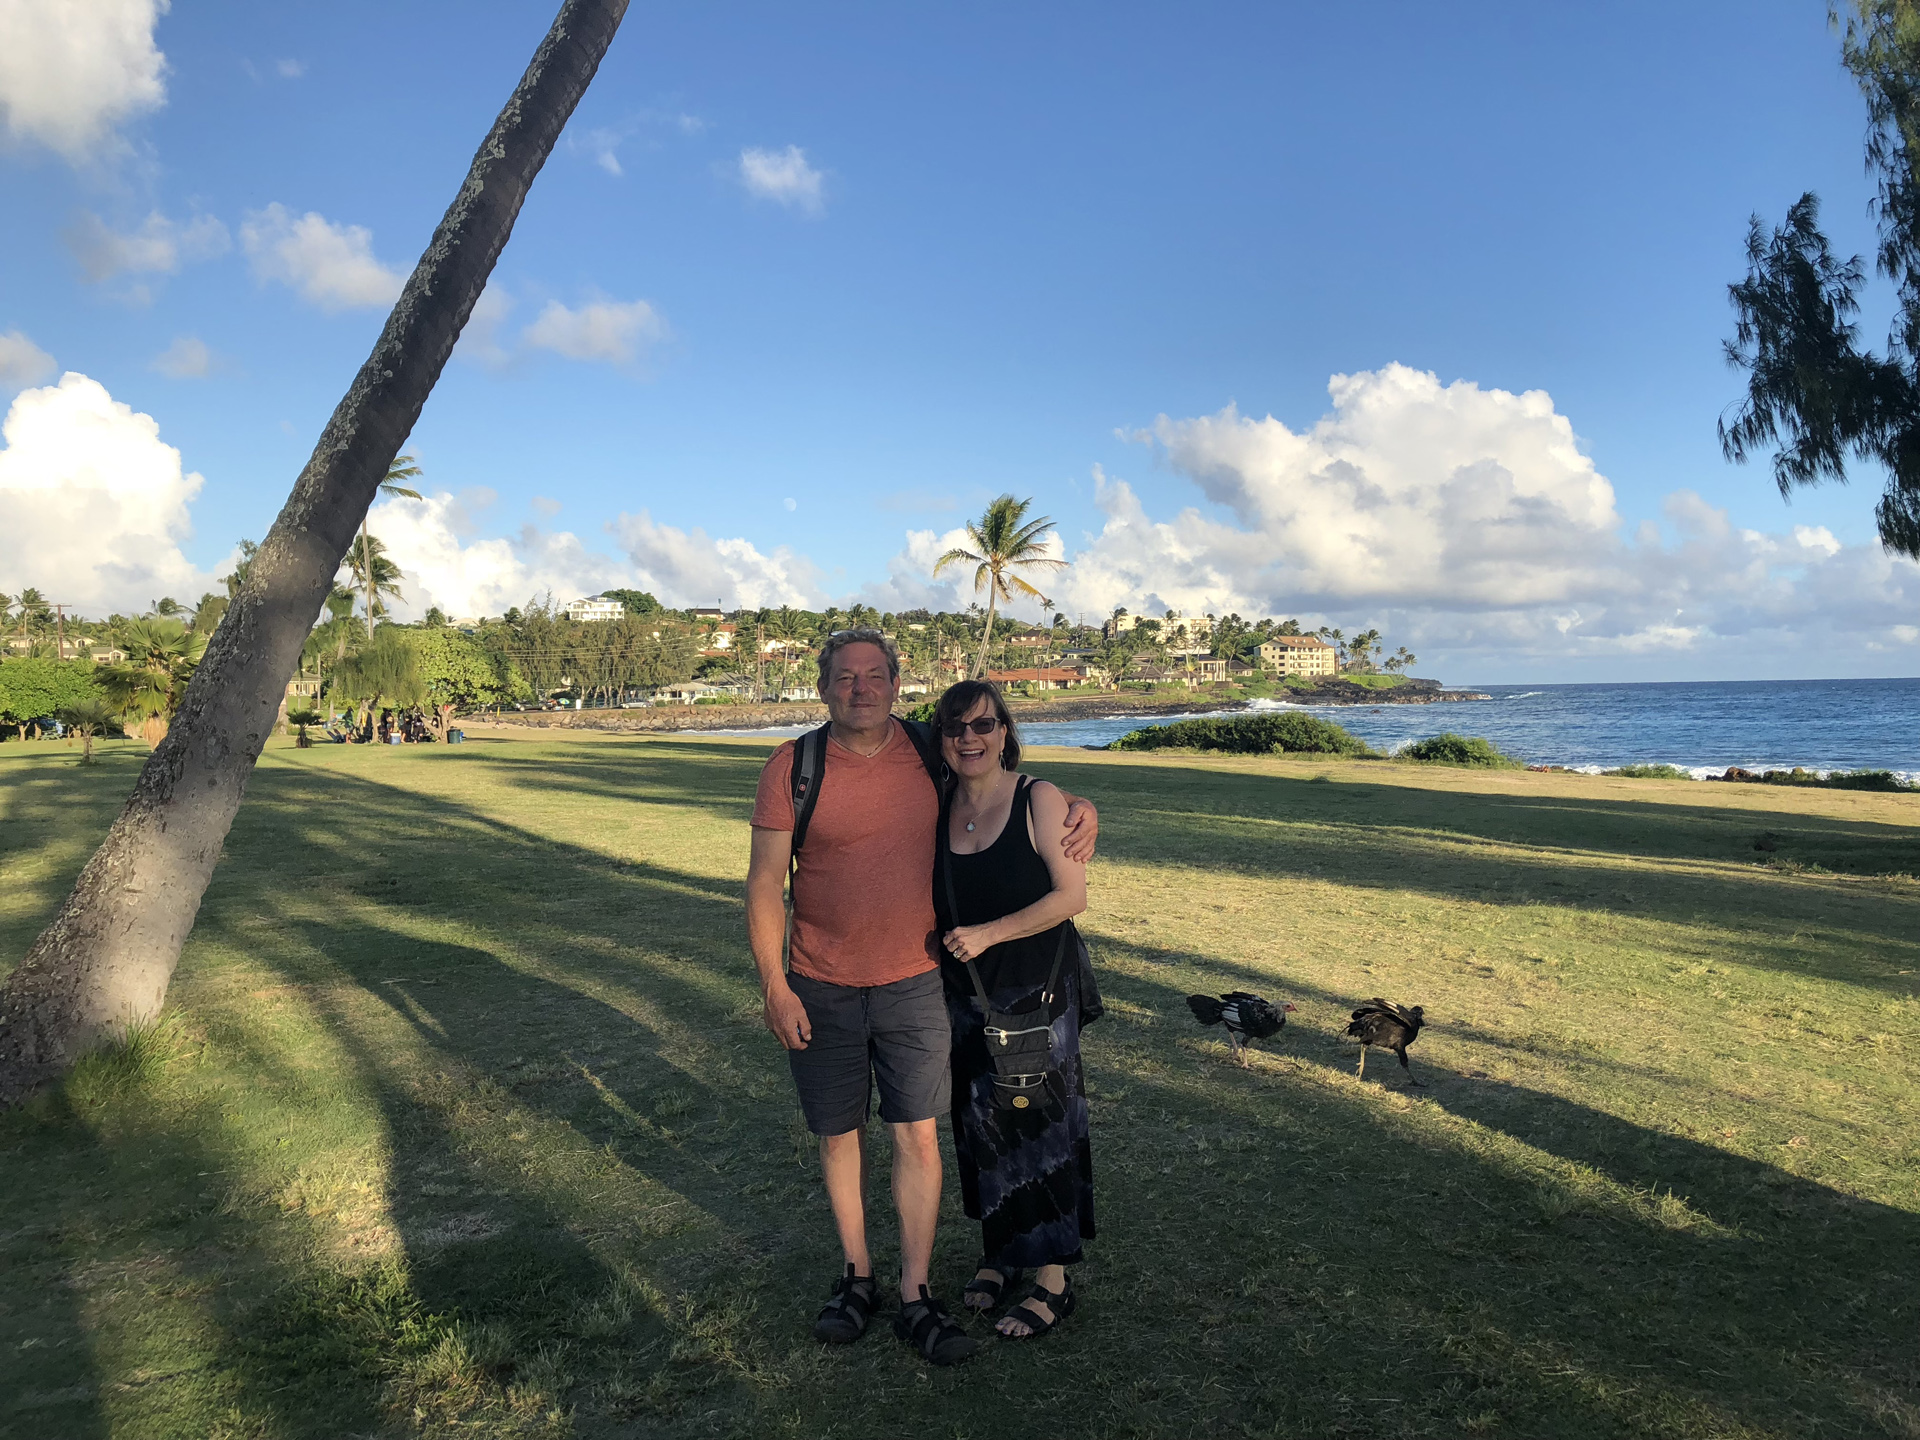 Richard Bilow and Kathy Leonardo in Kauai, Hawaii